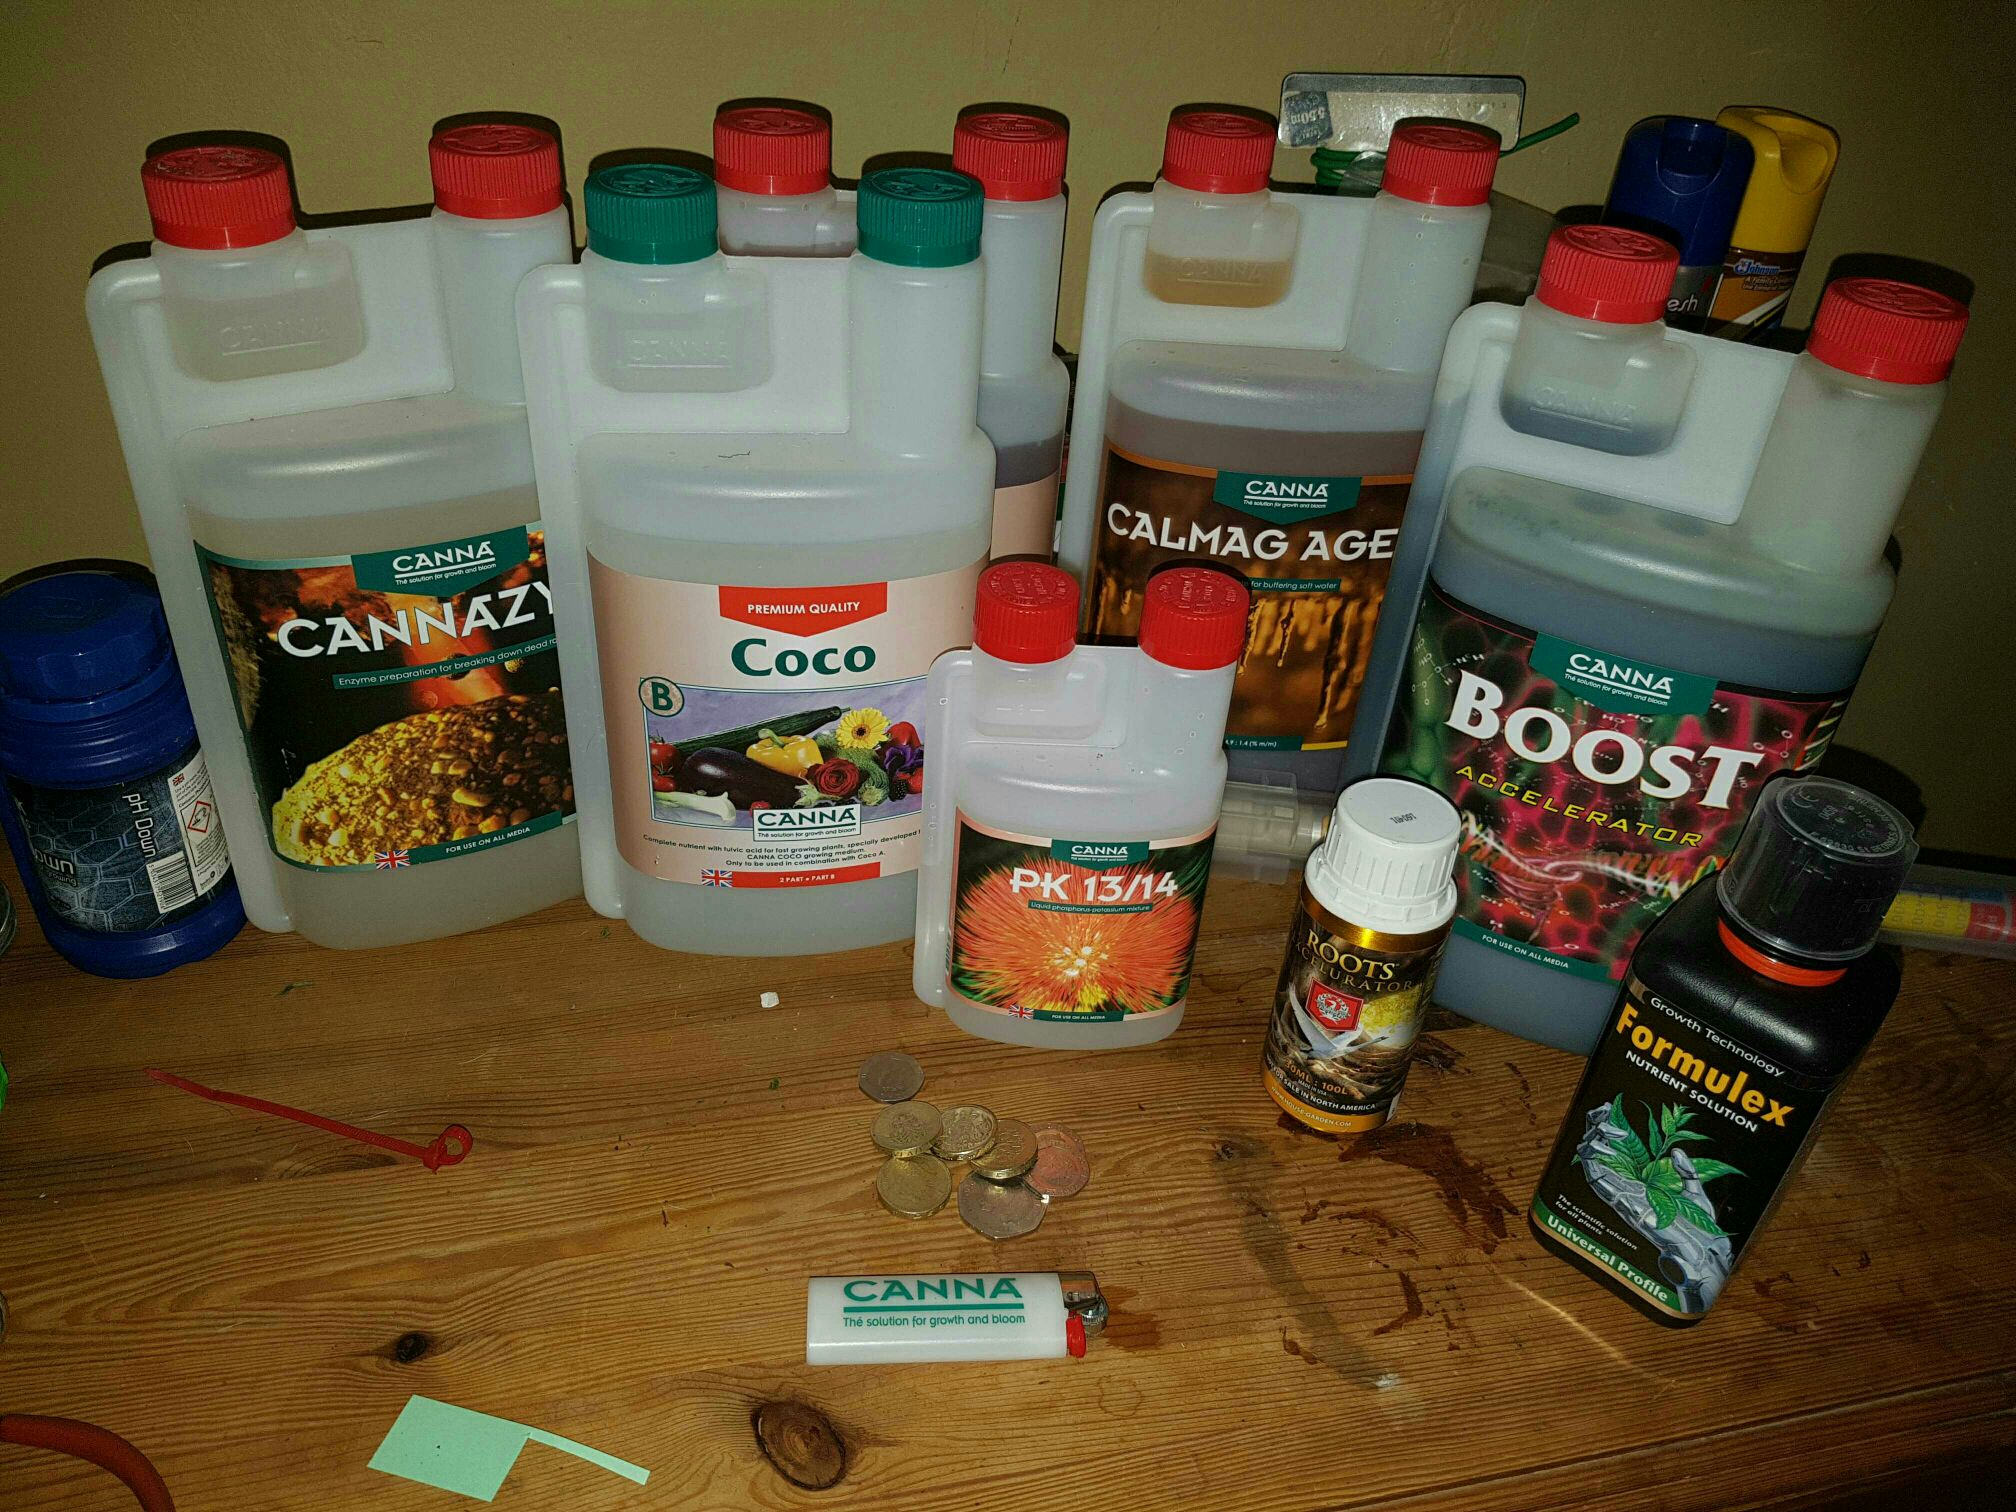 Canna coco full range feeding guide please guys | The